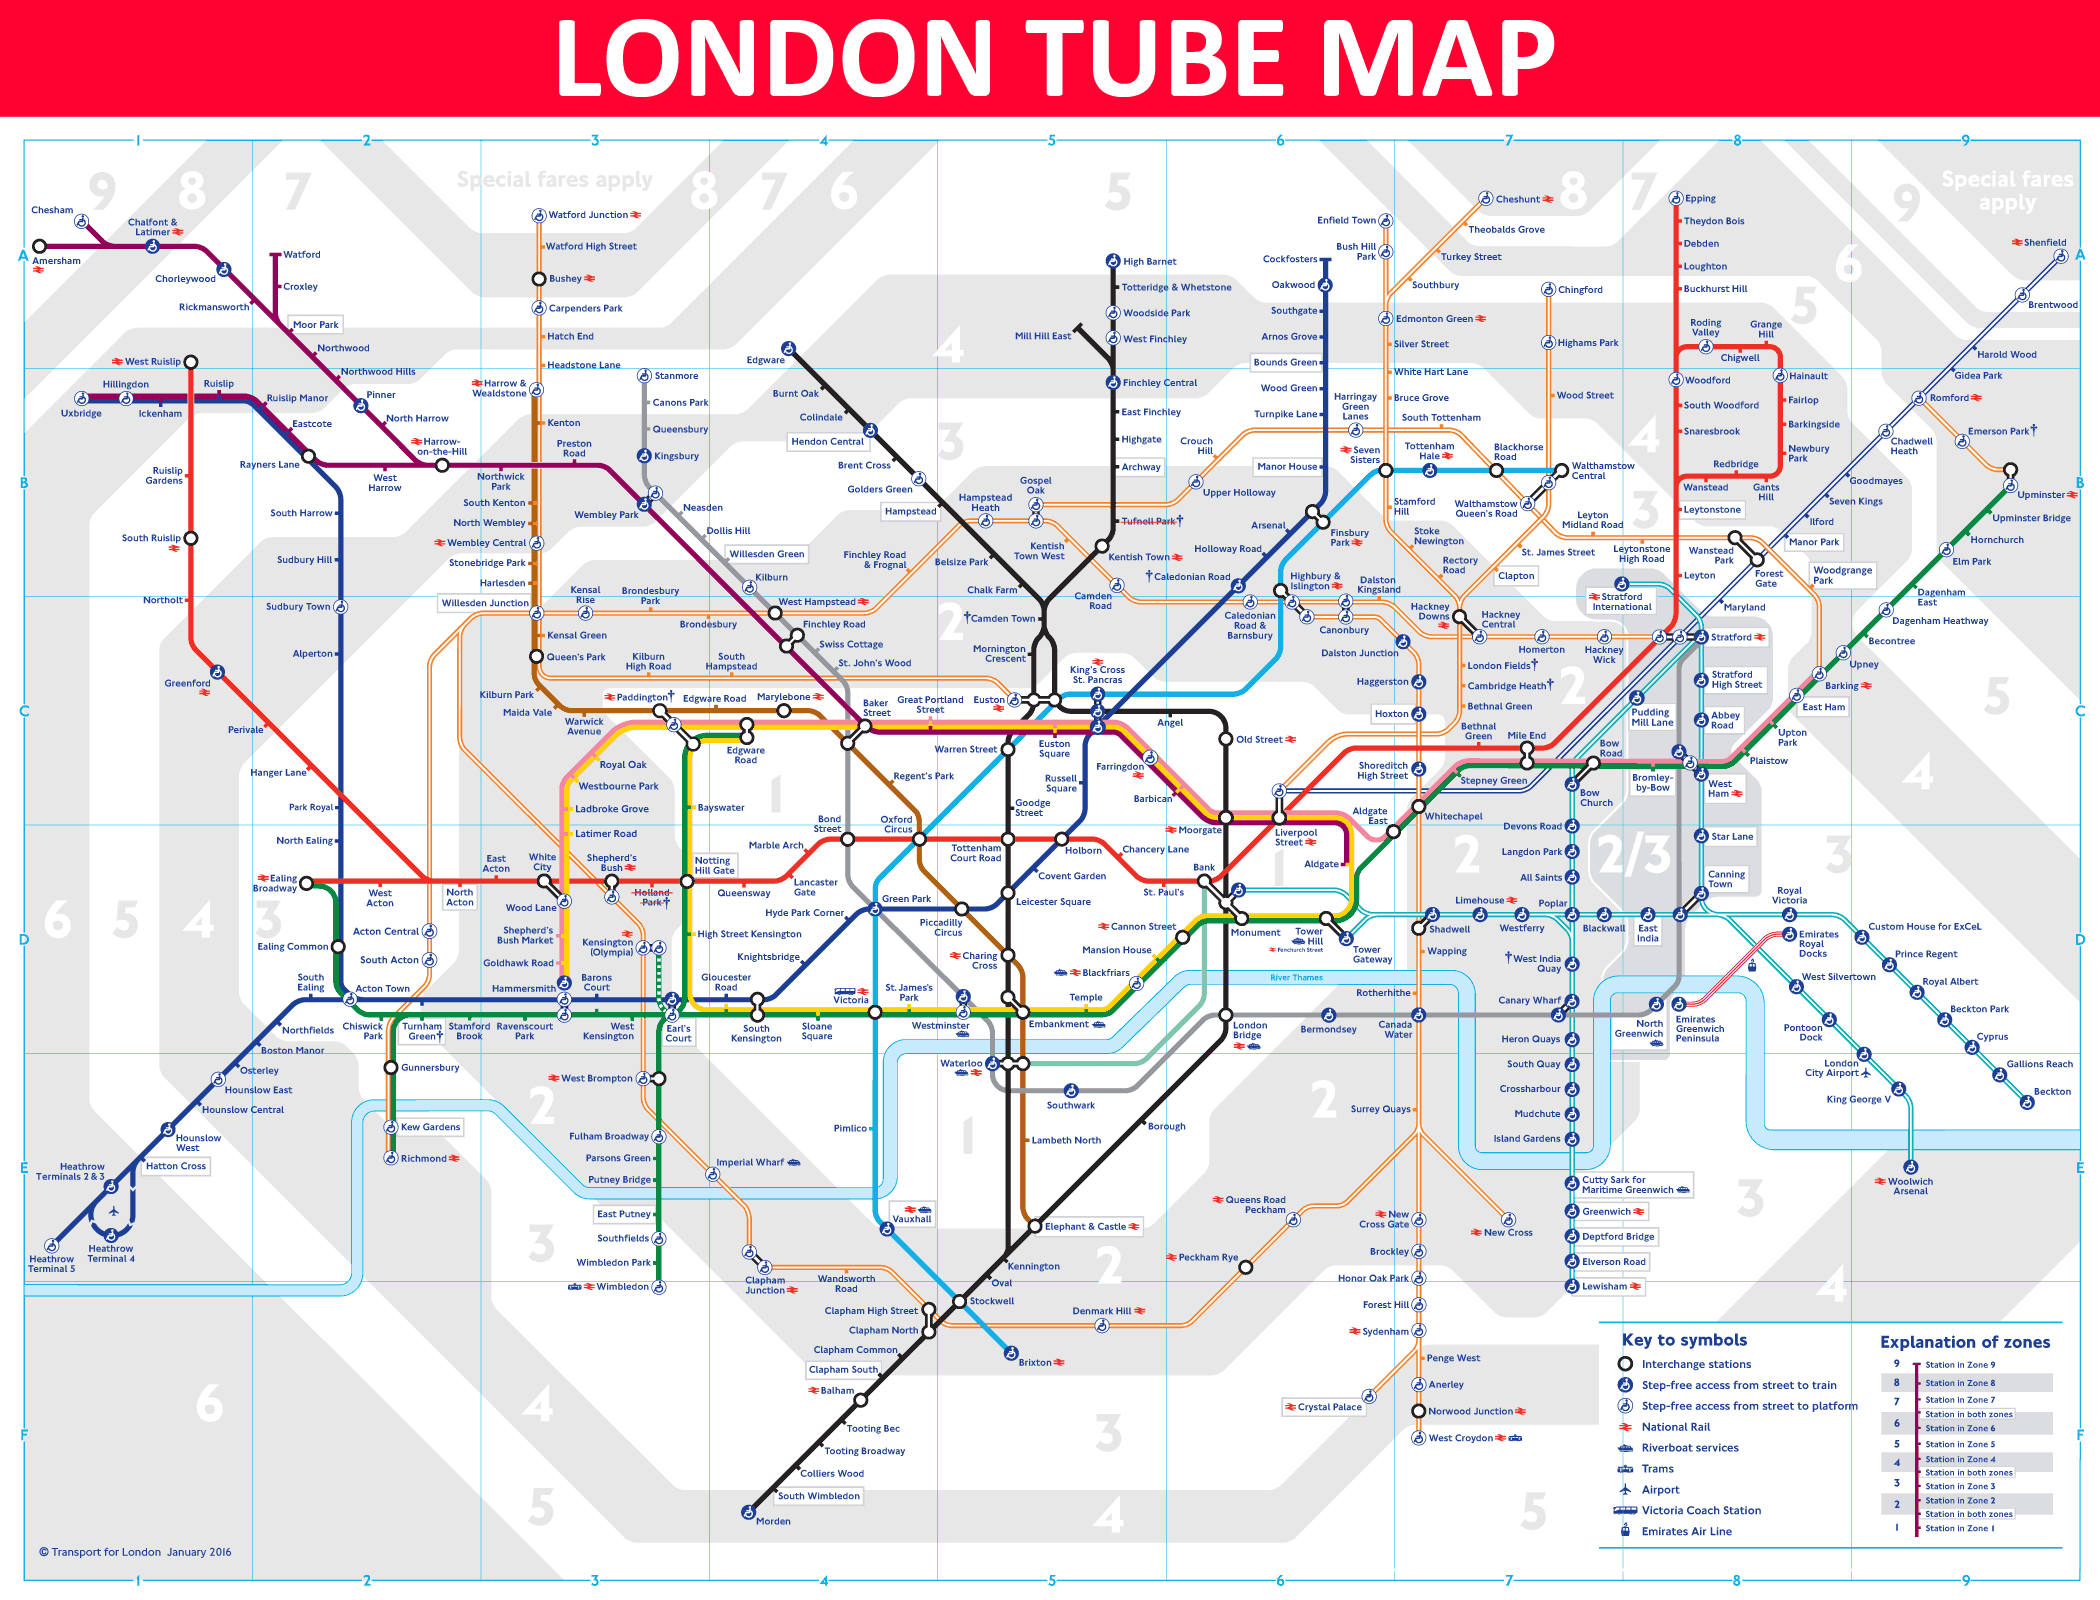 Wembley Tube Map London Tube Map 2019   Lines, Times, Tickets, Tourist Info